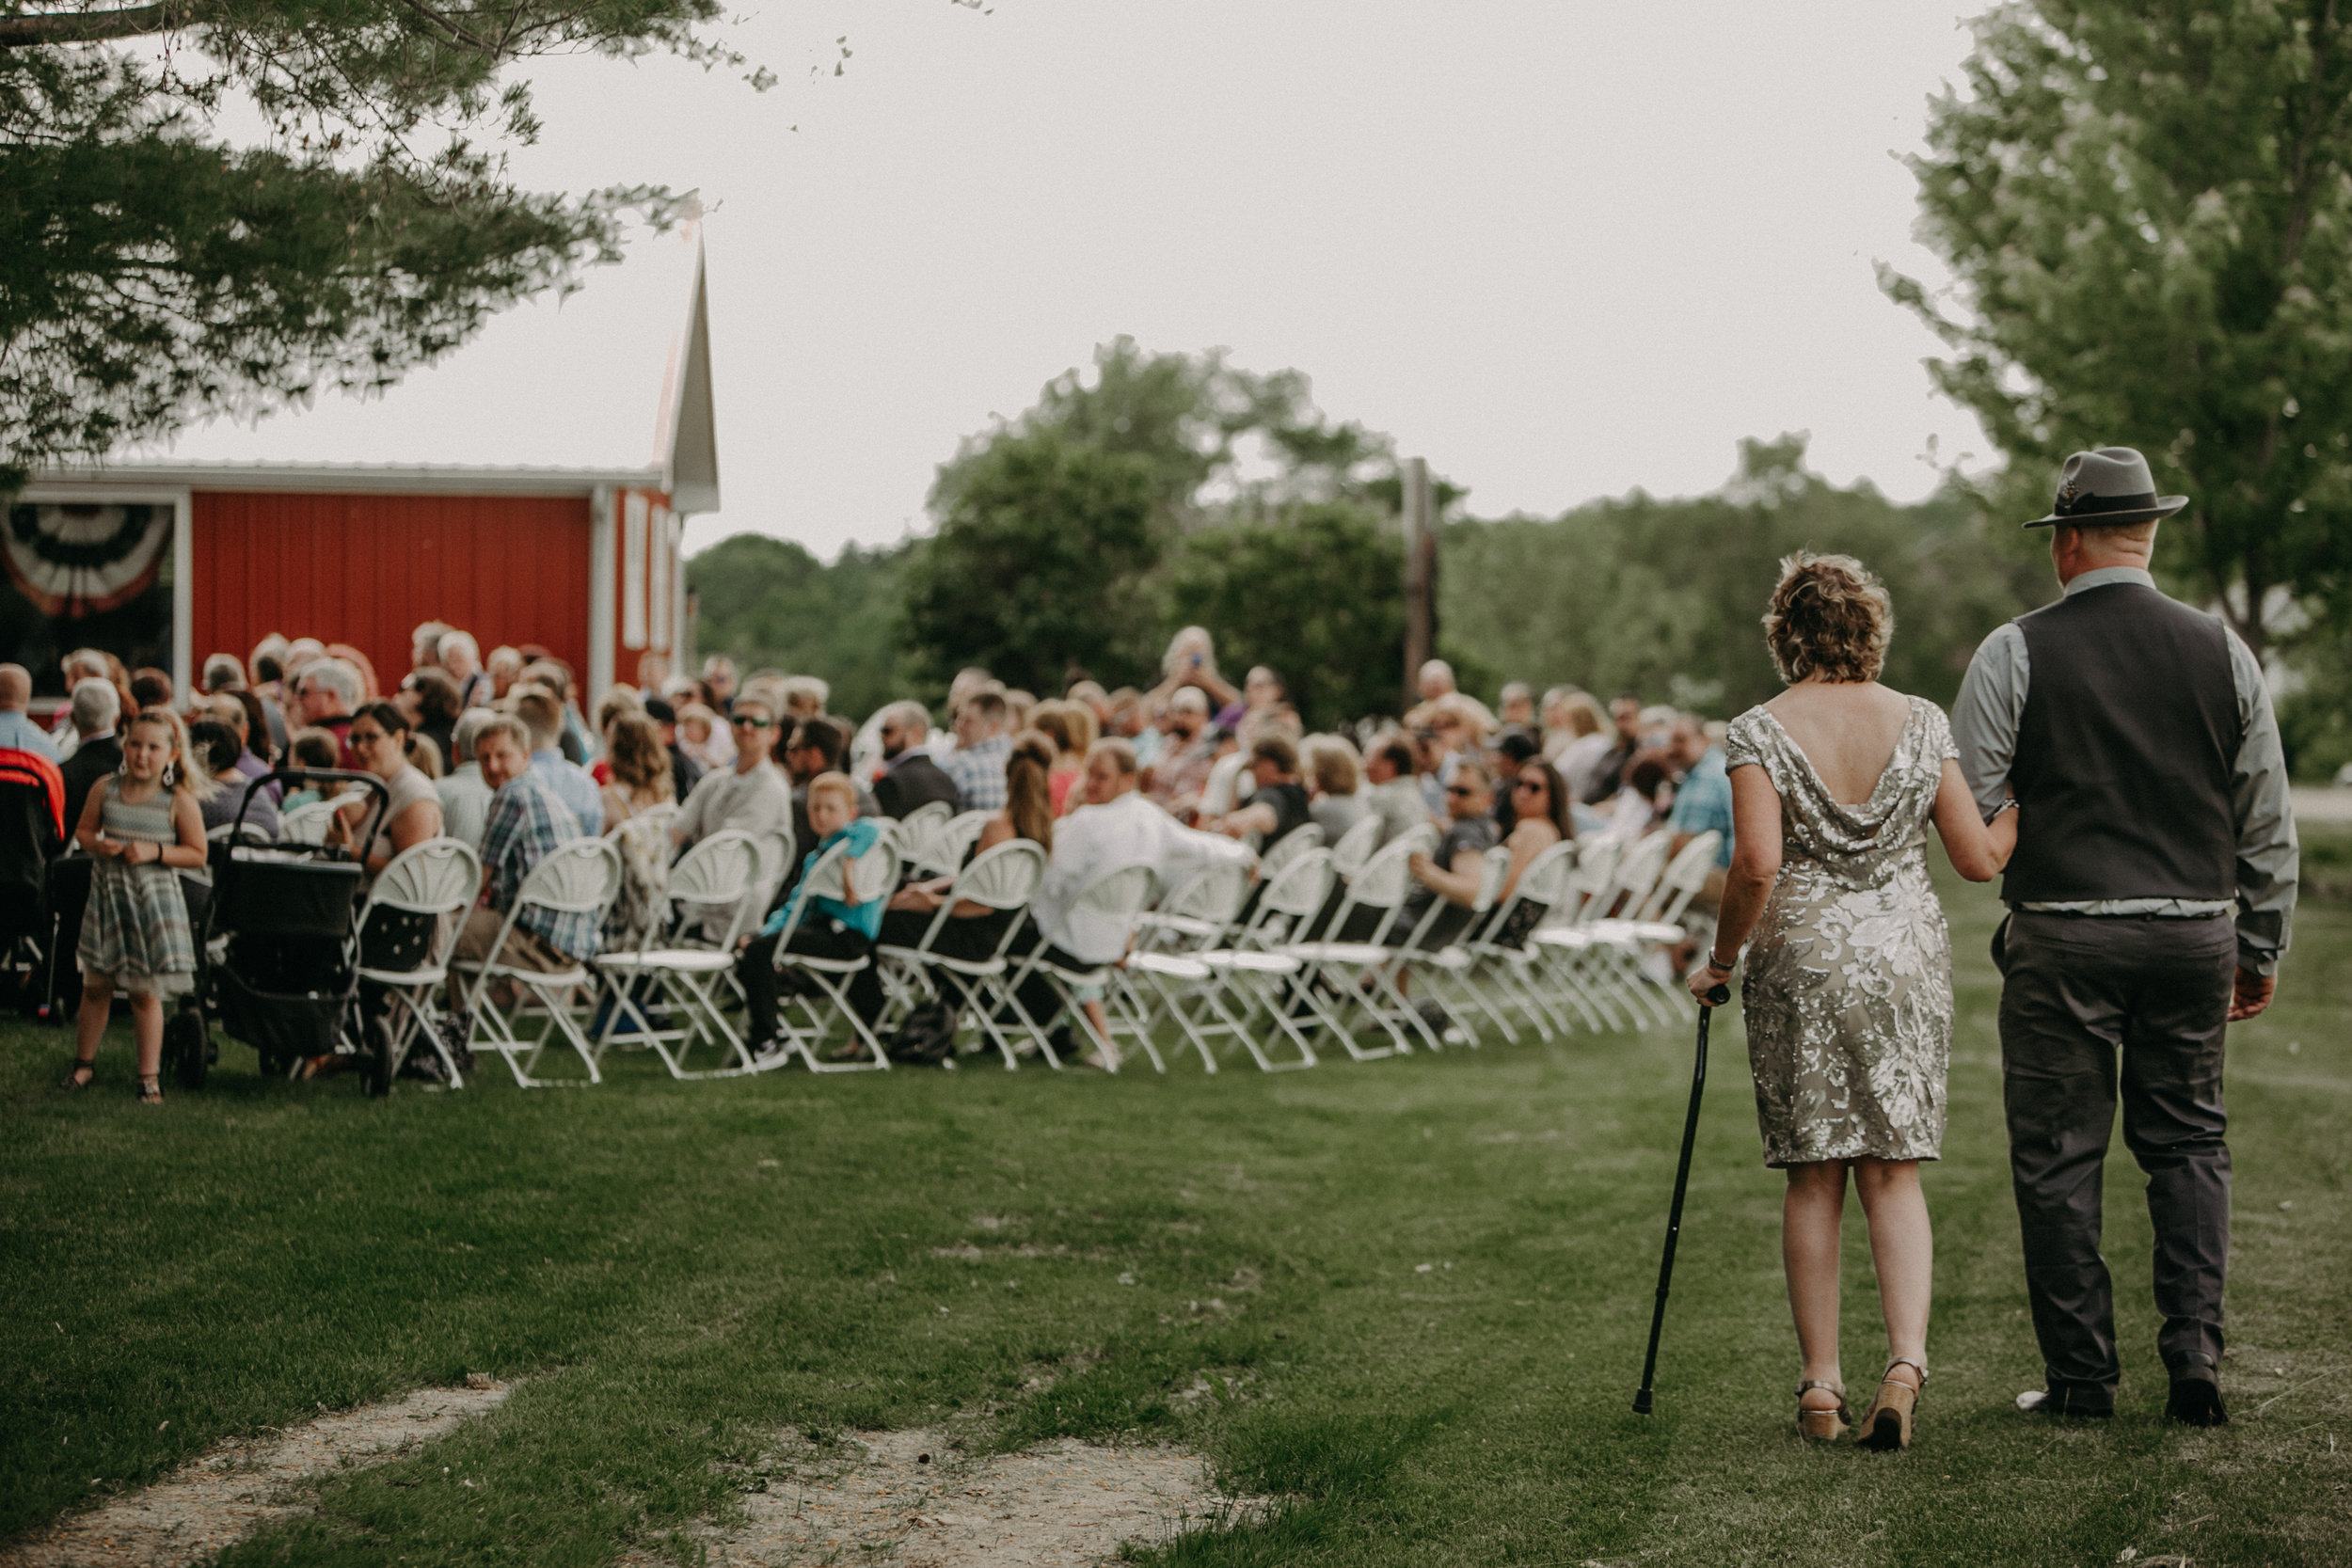 Ellsworth WI wedding photographer Andrea Wagner captures a moment where the groom walks his mother down the aisle at Jean Acres Barn